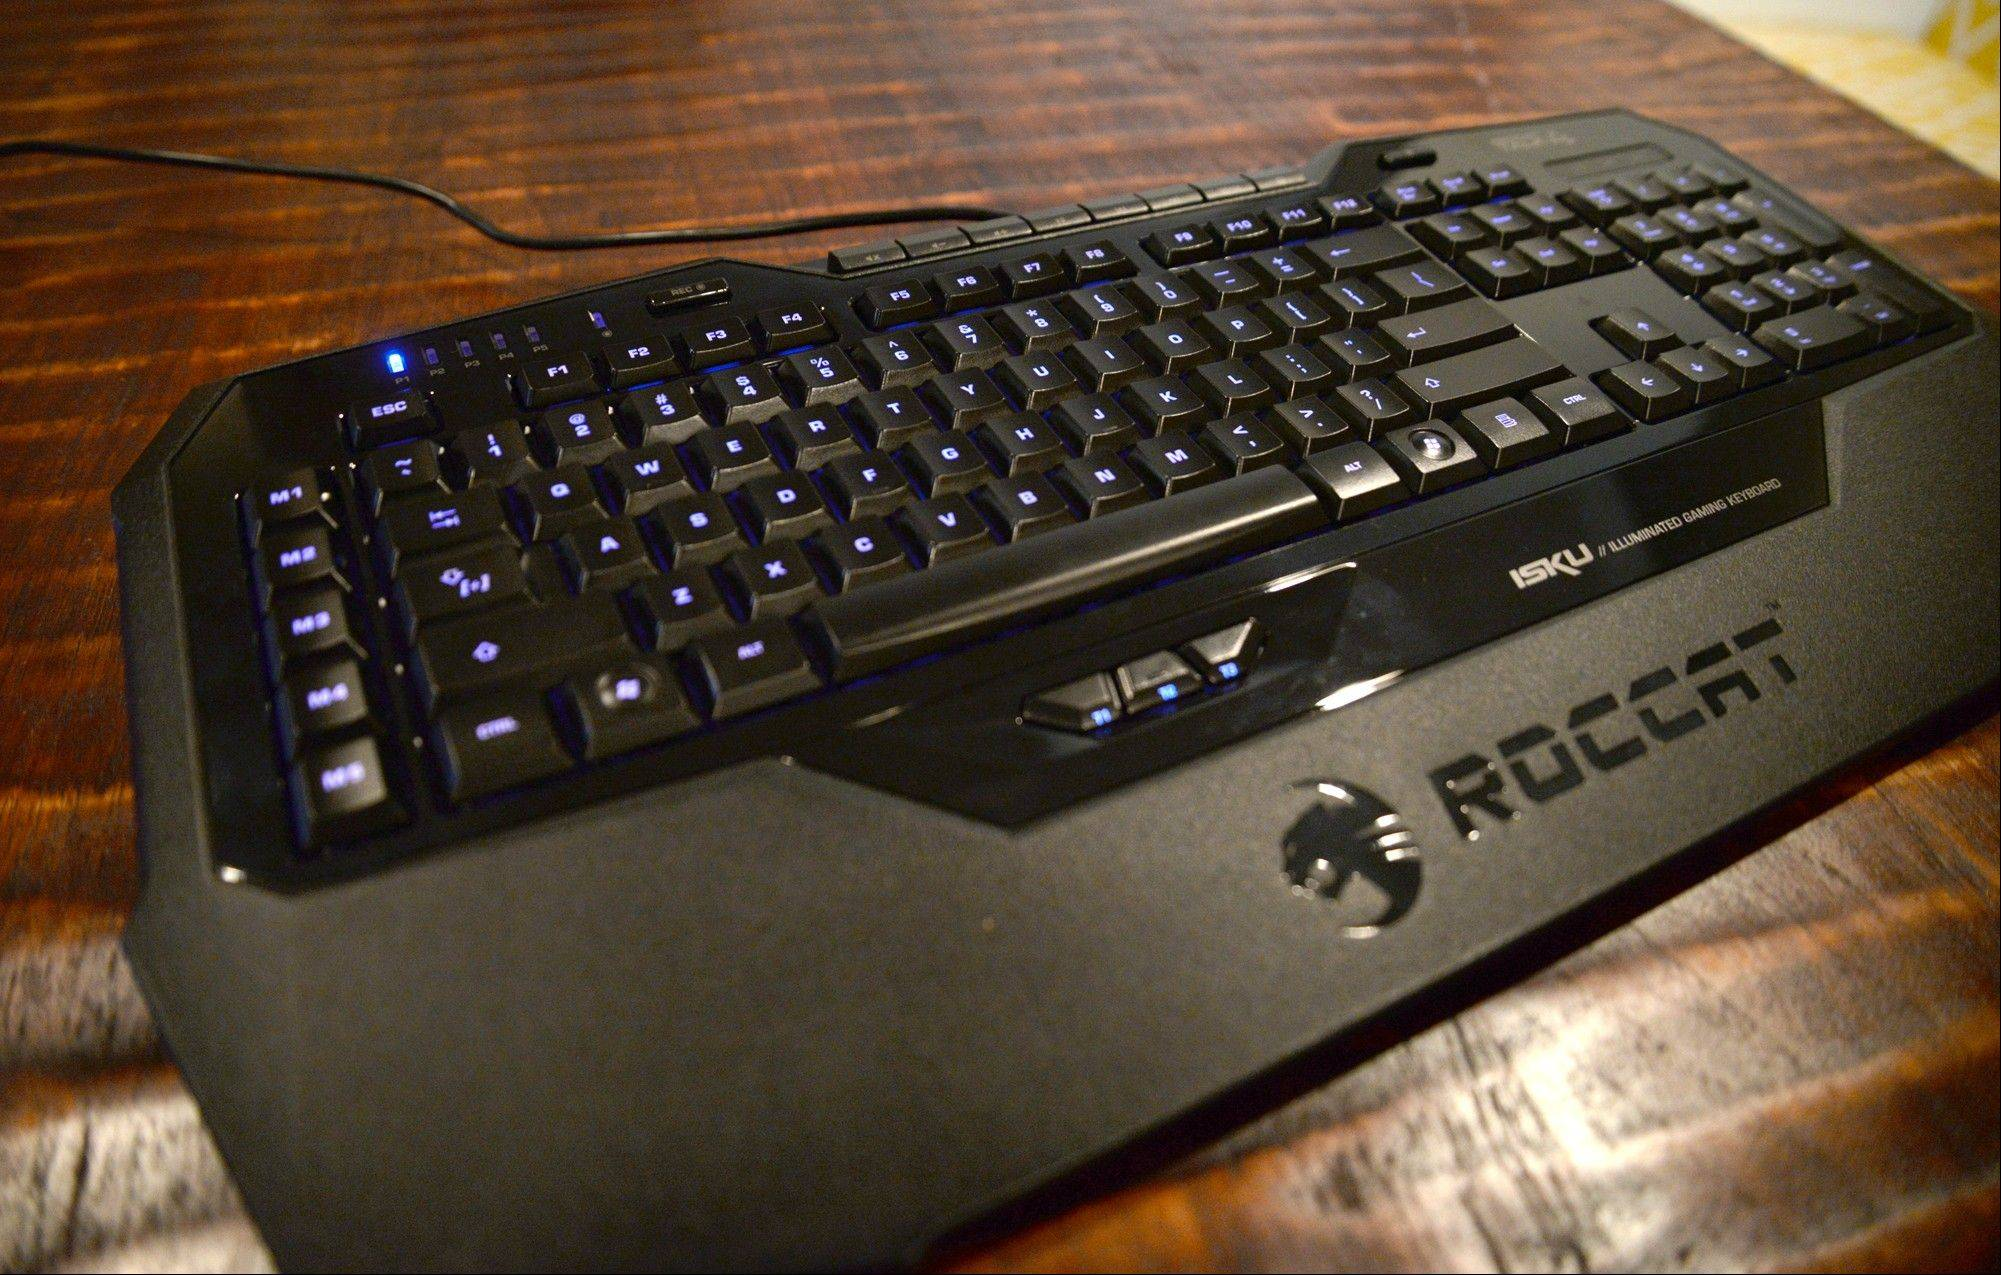 Roccat Isku FX keyboard has adjustable backlighting for the keys and programmable marcos to augment the PC gaming experience.